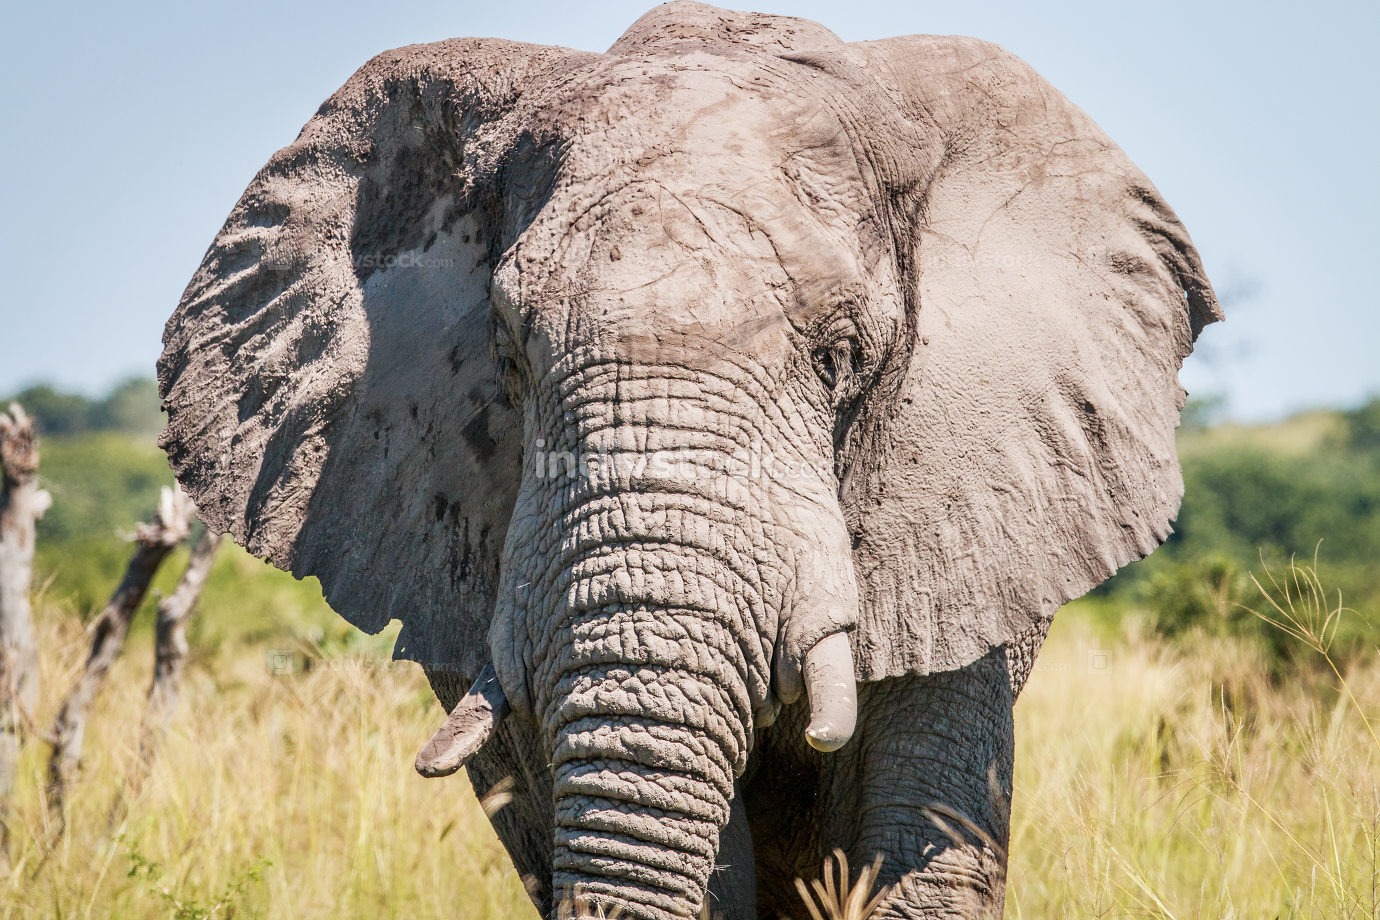 Elephant starring at the camera.